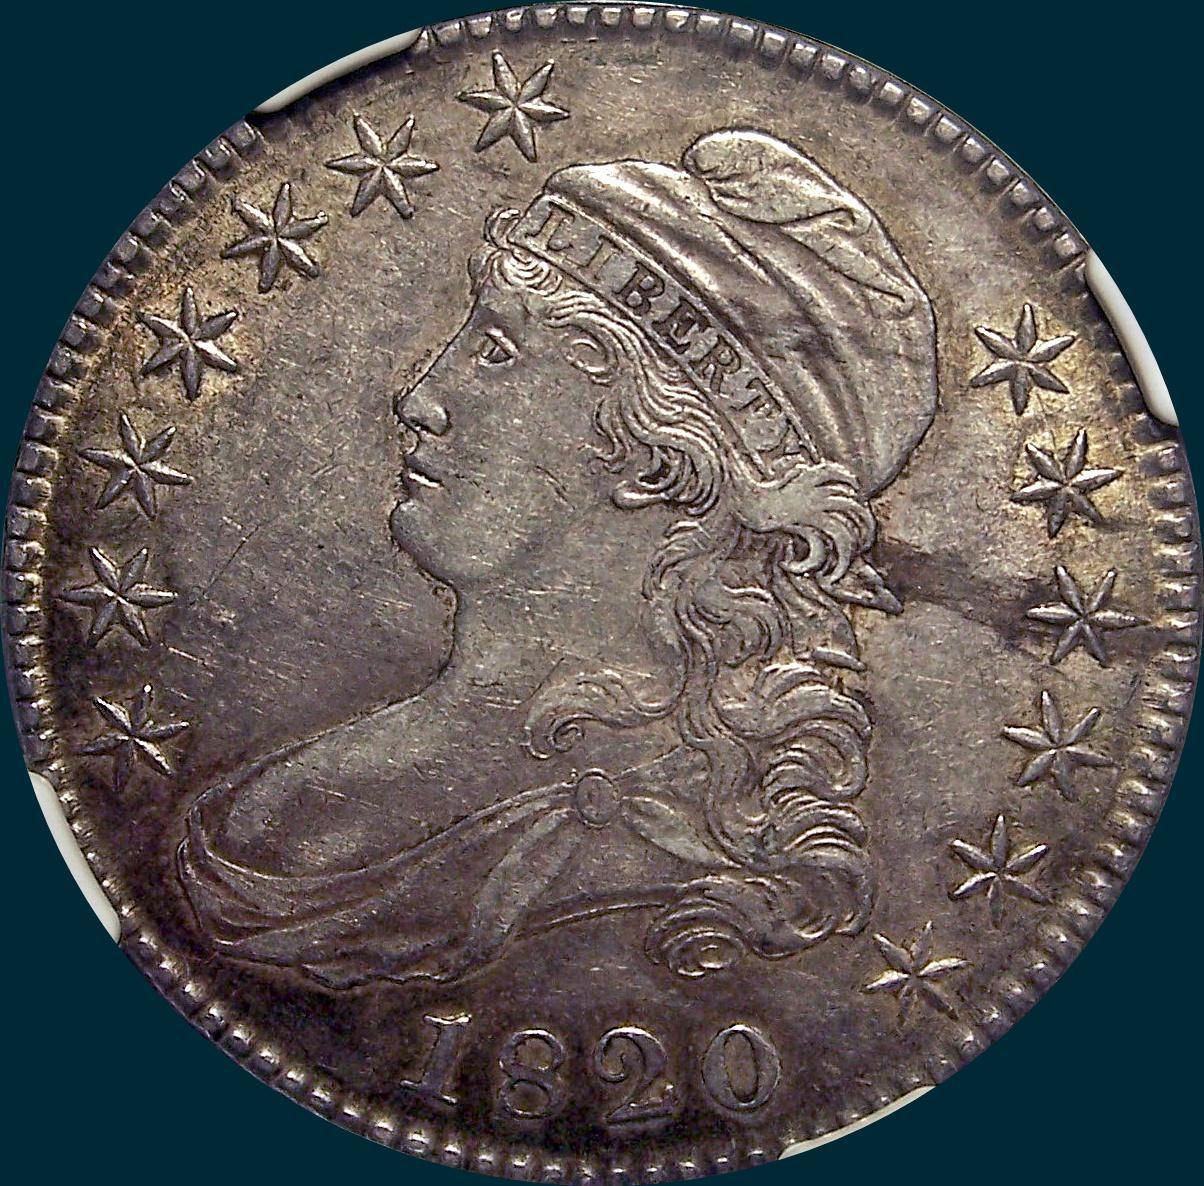 1820 O-108, no knob 2, capped bust half dollar